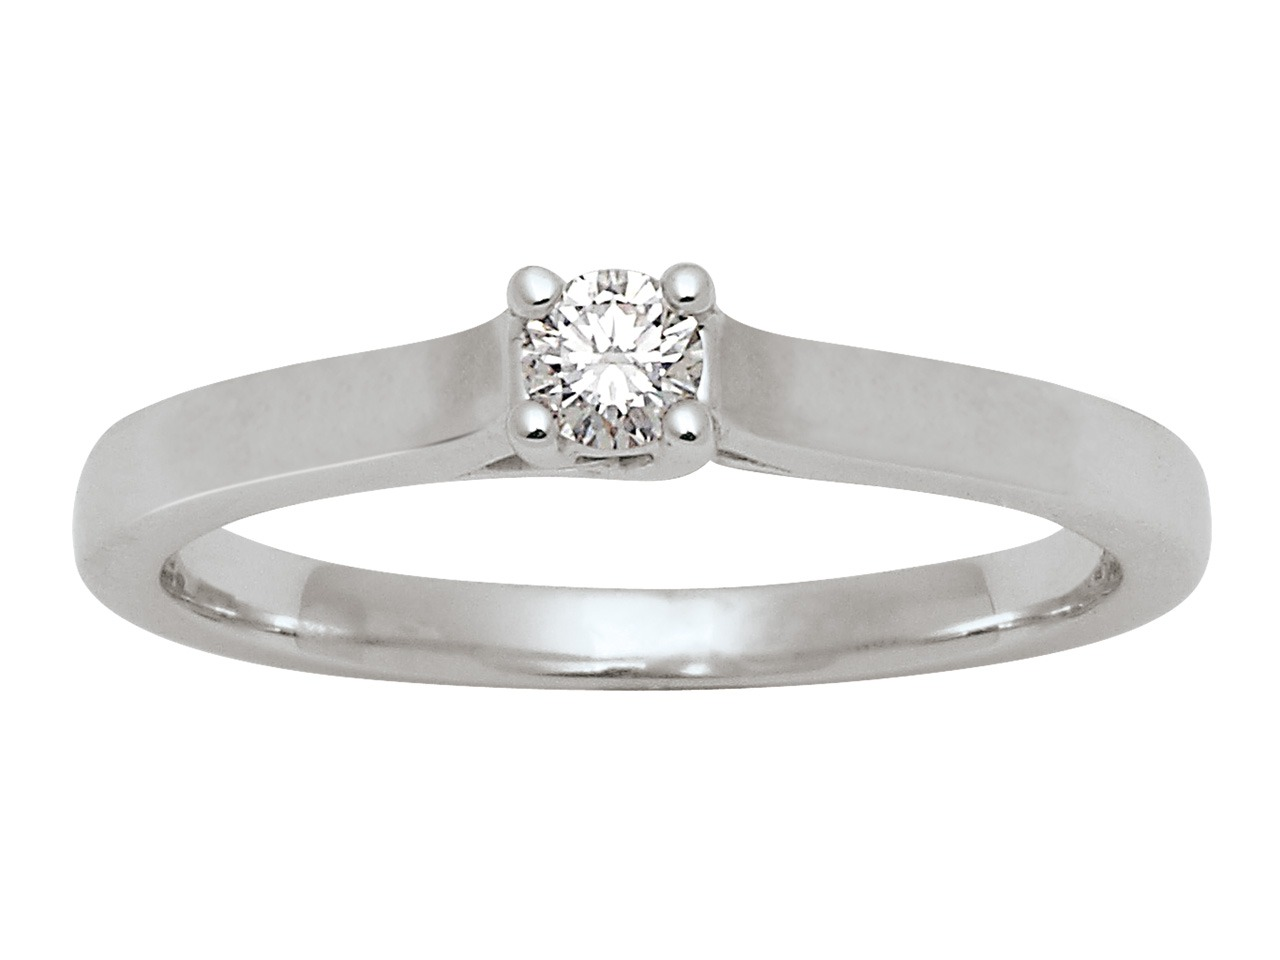 Bague Solitaire, Or gris 18k, diamants 0,10 ct, doigt 56